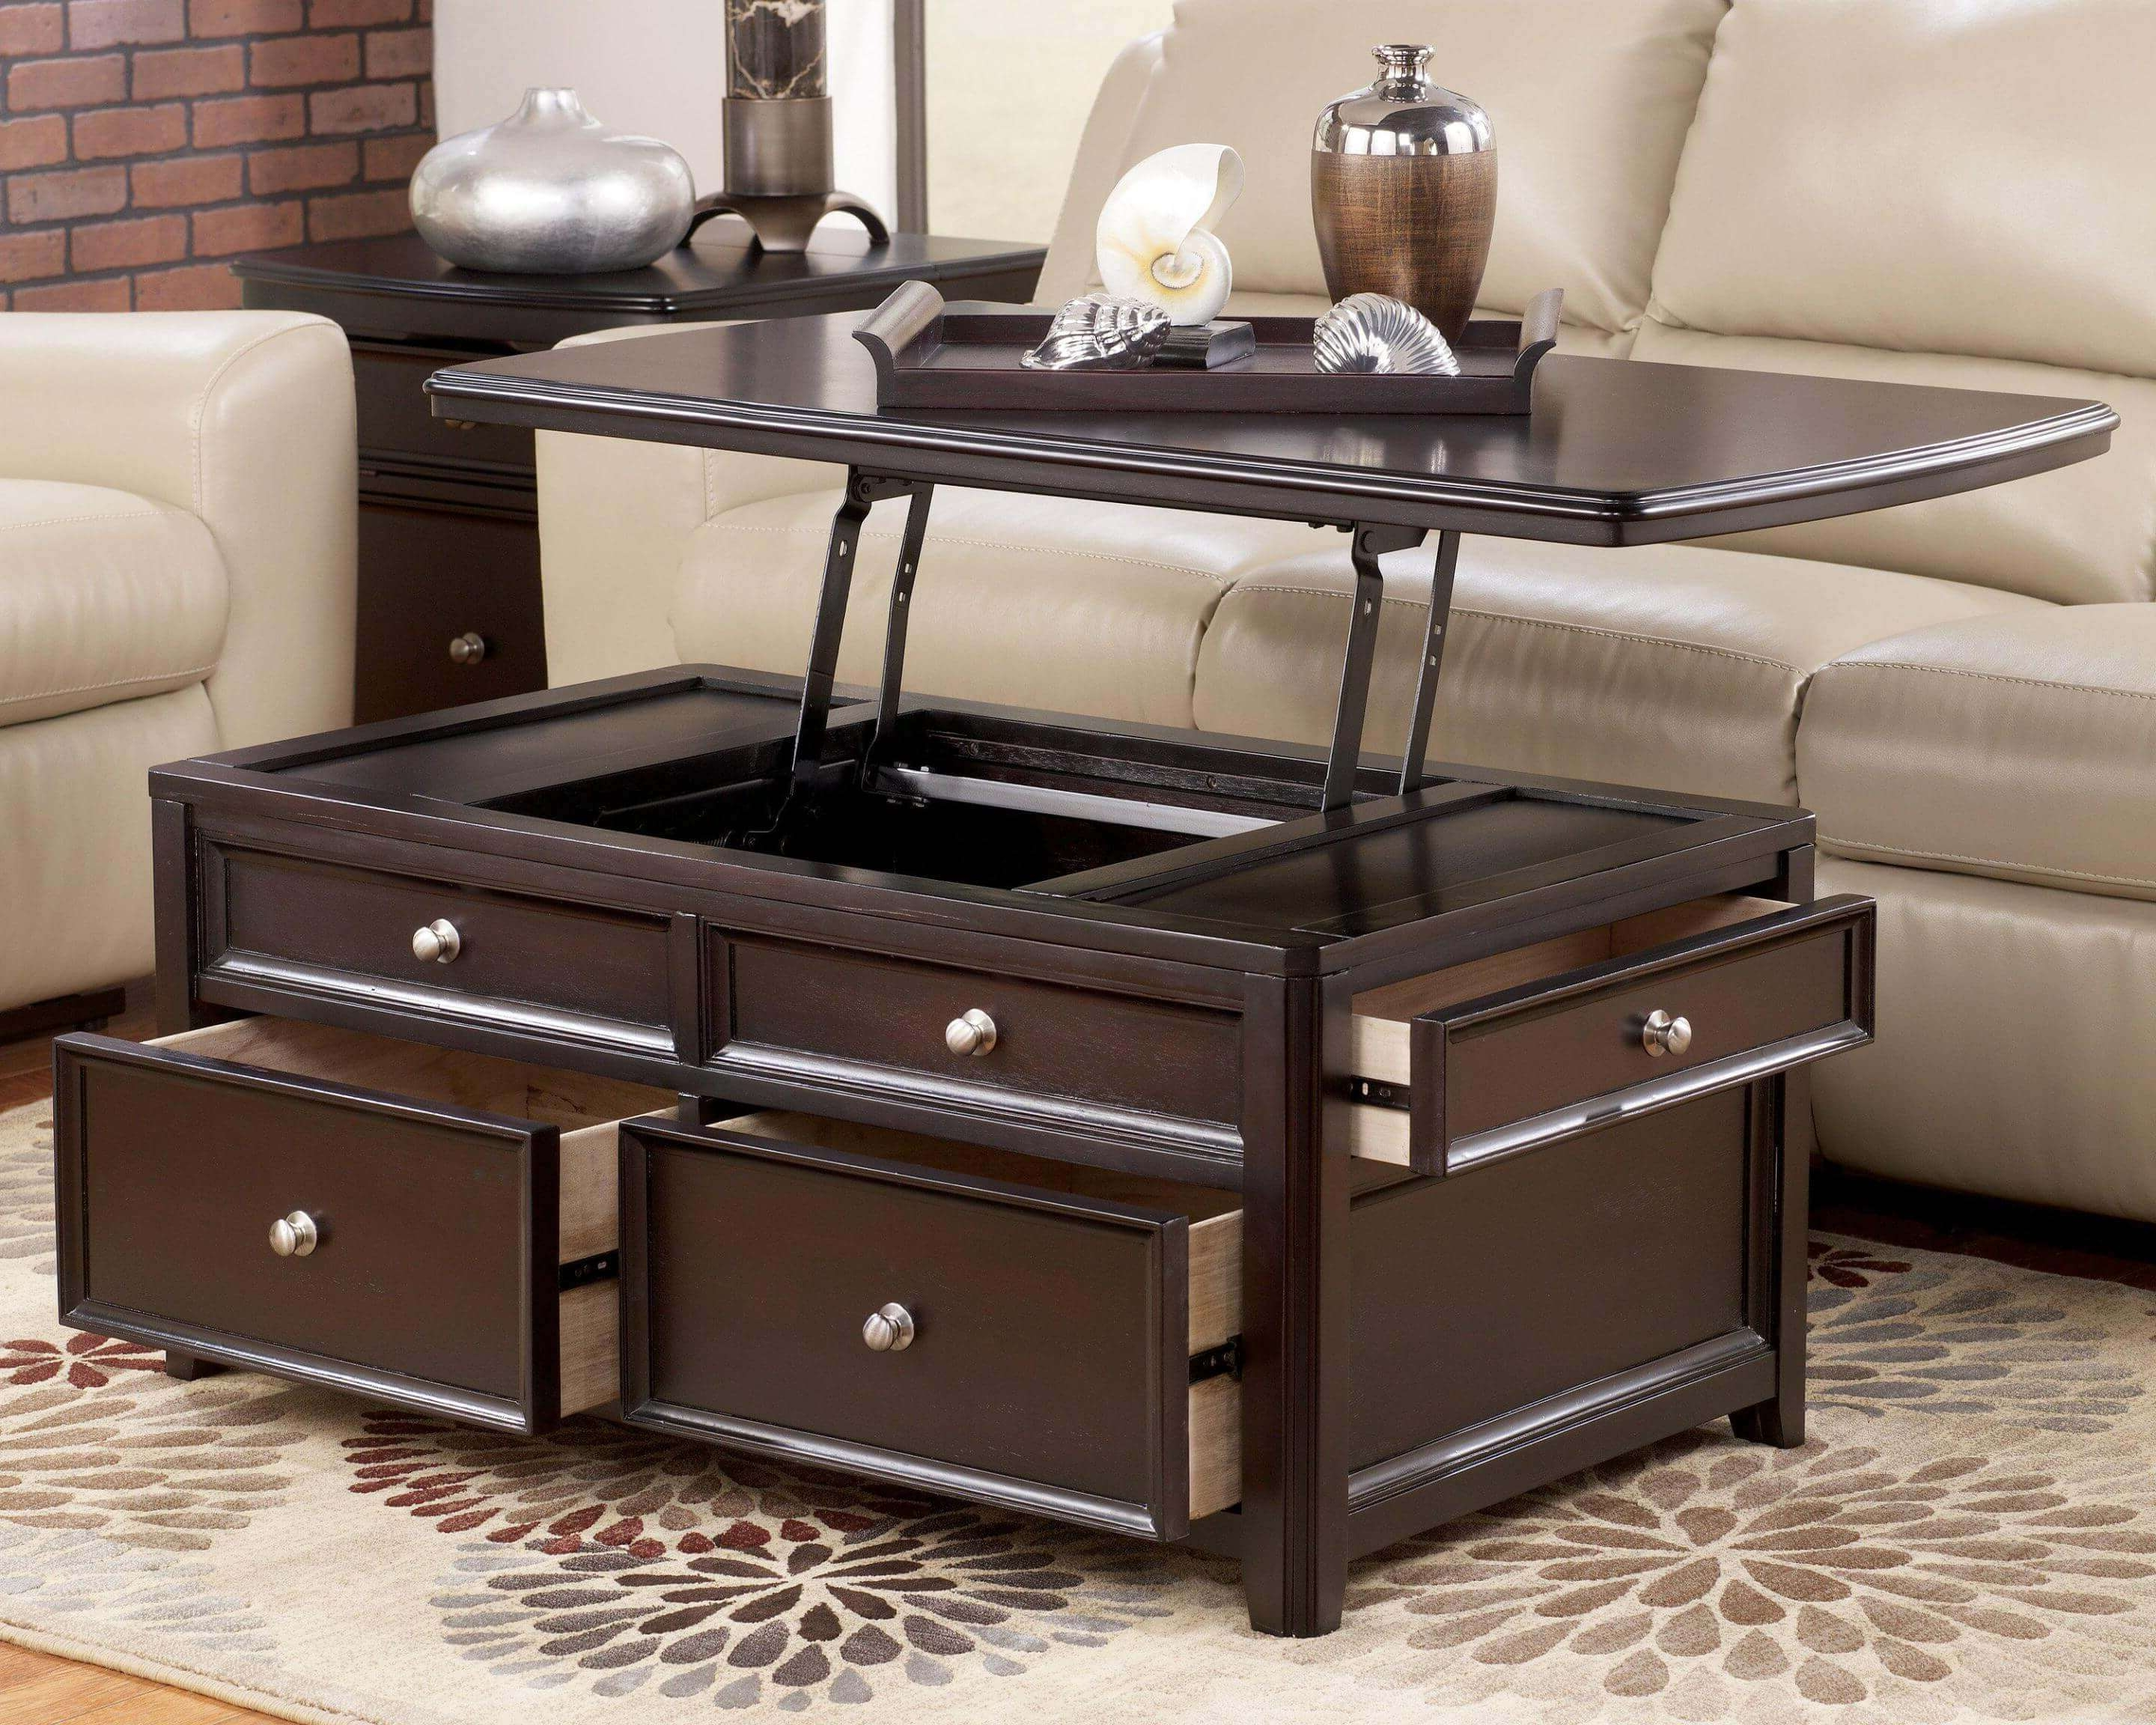 Most Current Coffee Tables With Lift Top And Storage For Coffee Tables : Lift Top Coffee Table With Storage Flip — Office (View 4 of 20)